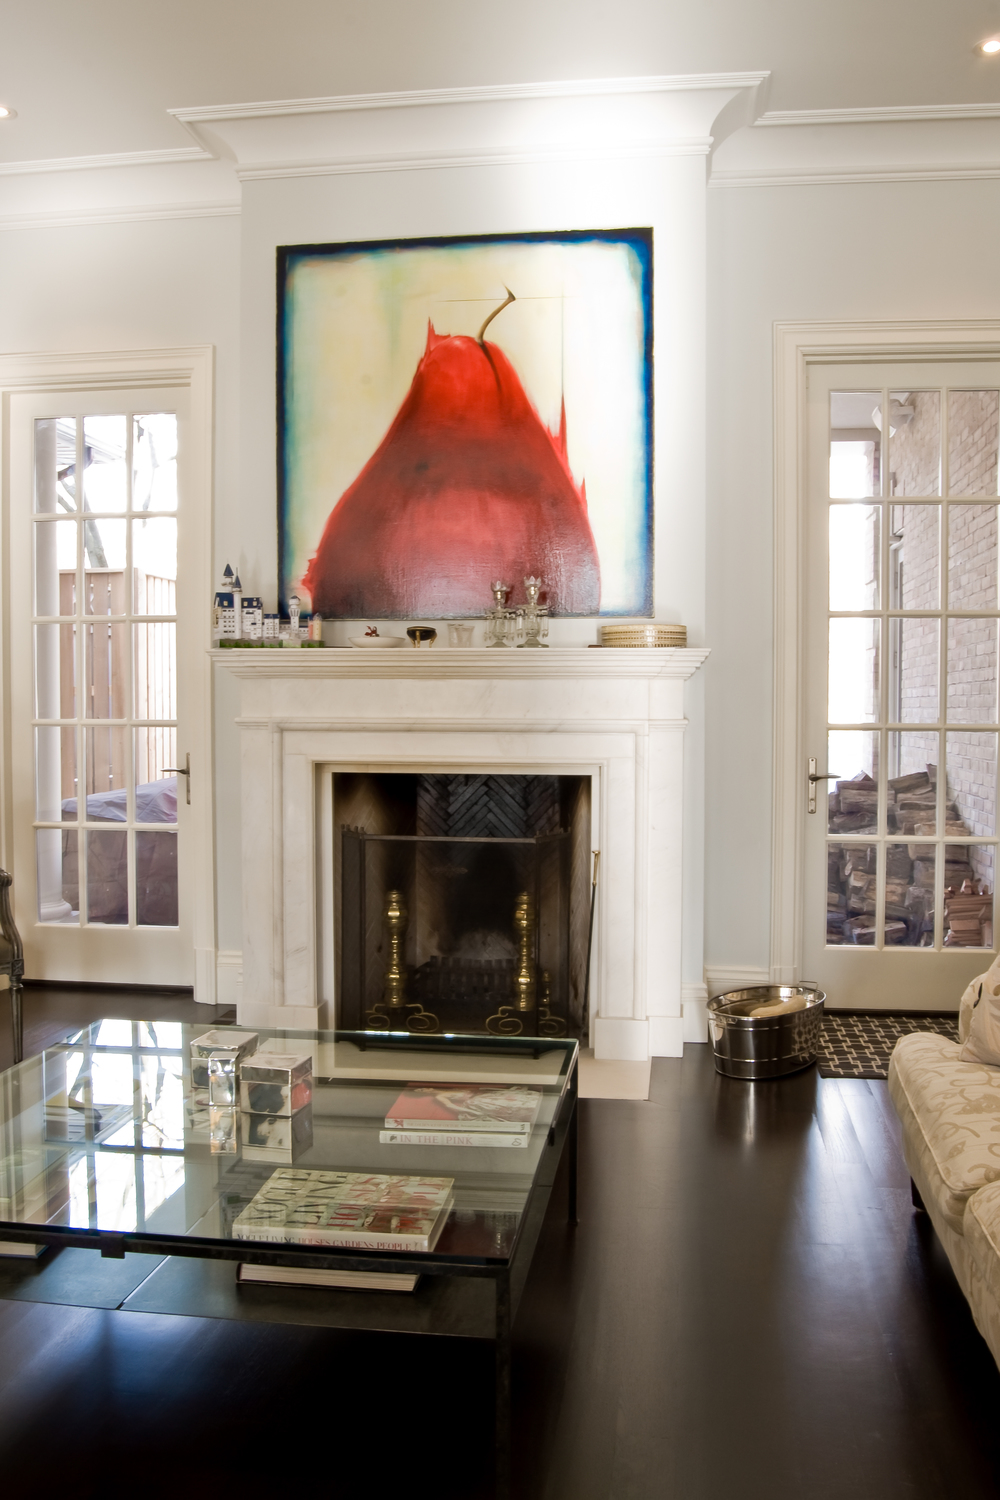 20100128-interior family room fireplace-2.jpg